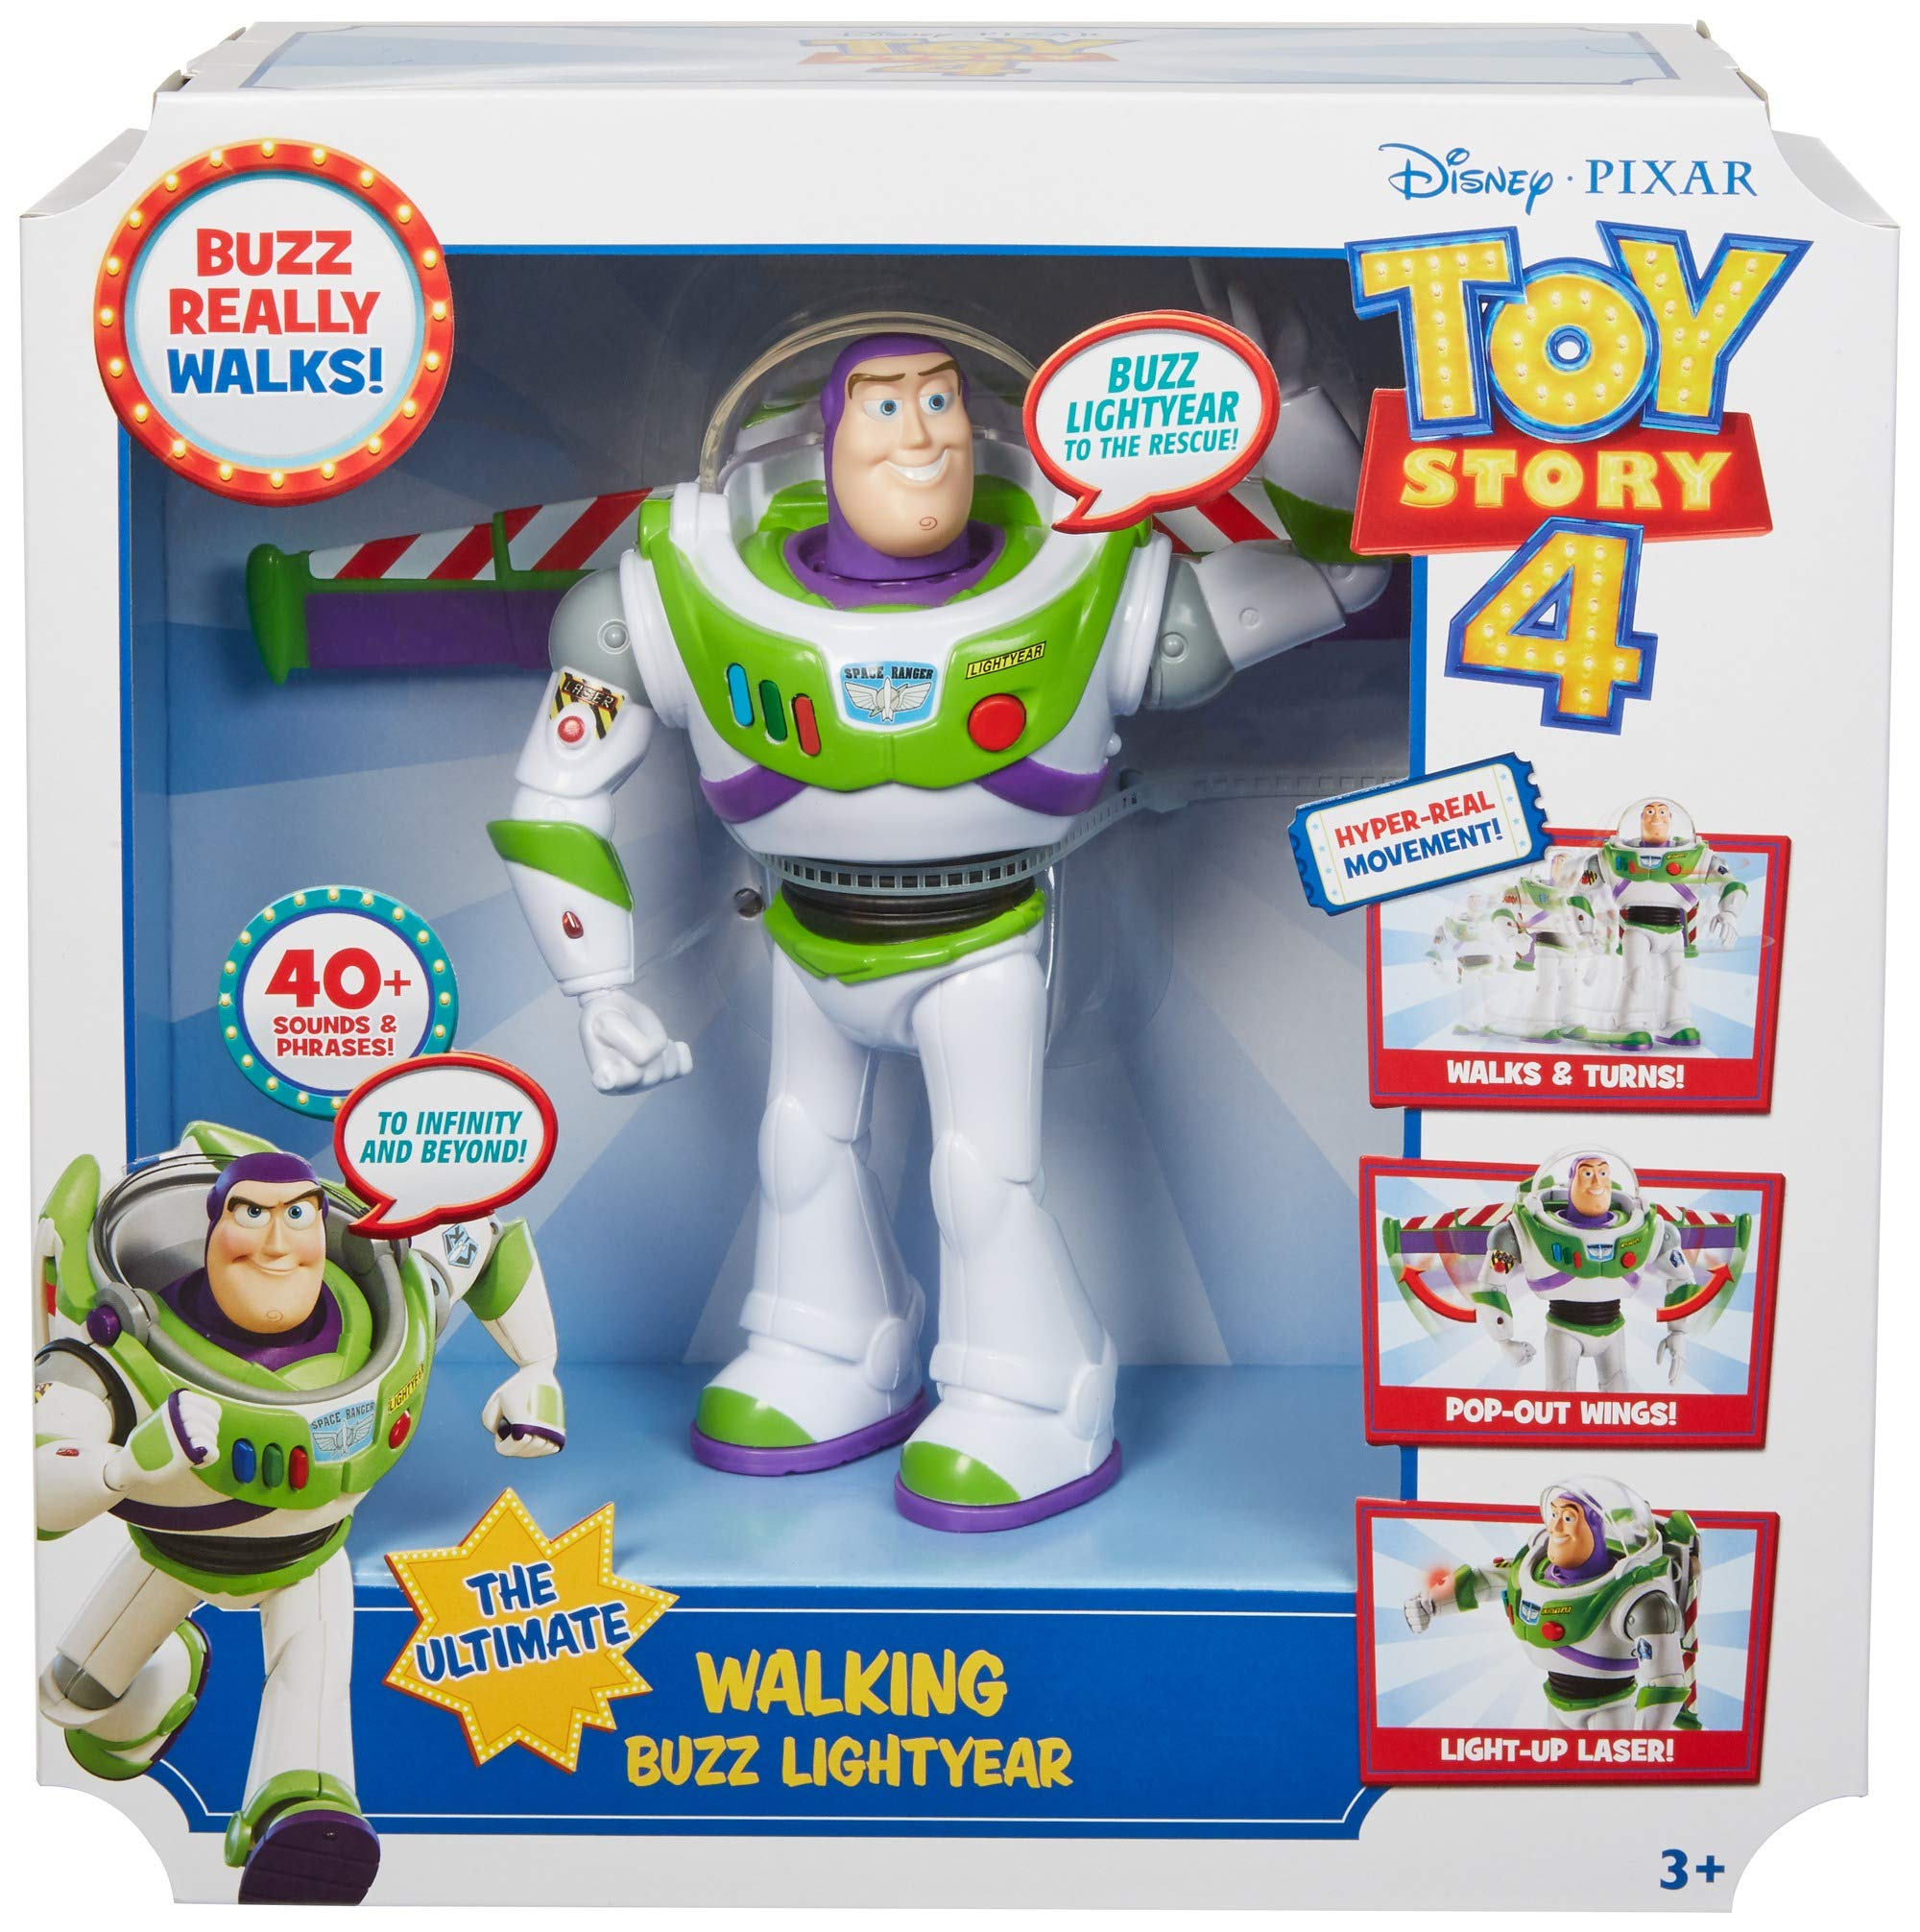 Disney Pixar Toy Story Ultimate Walking Buzz Lightyear, 7'' by Toy Story (Image #6)